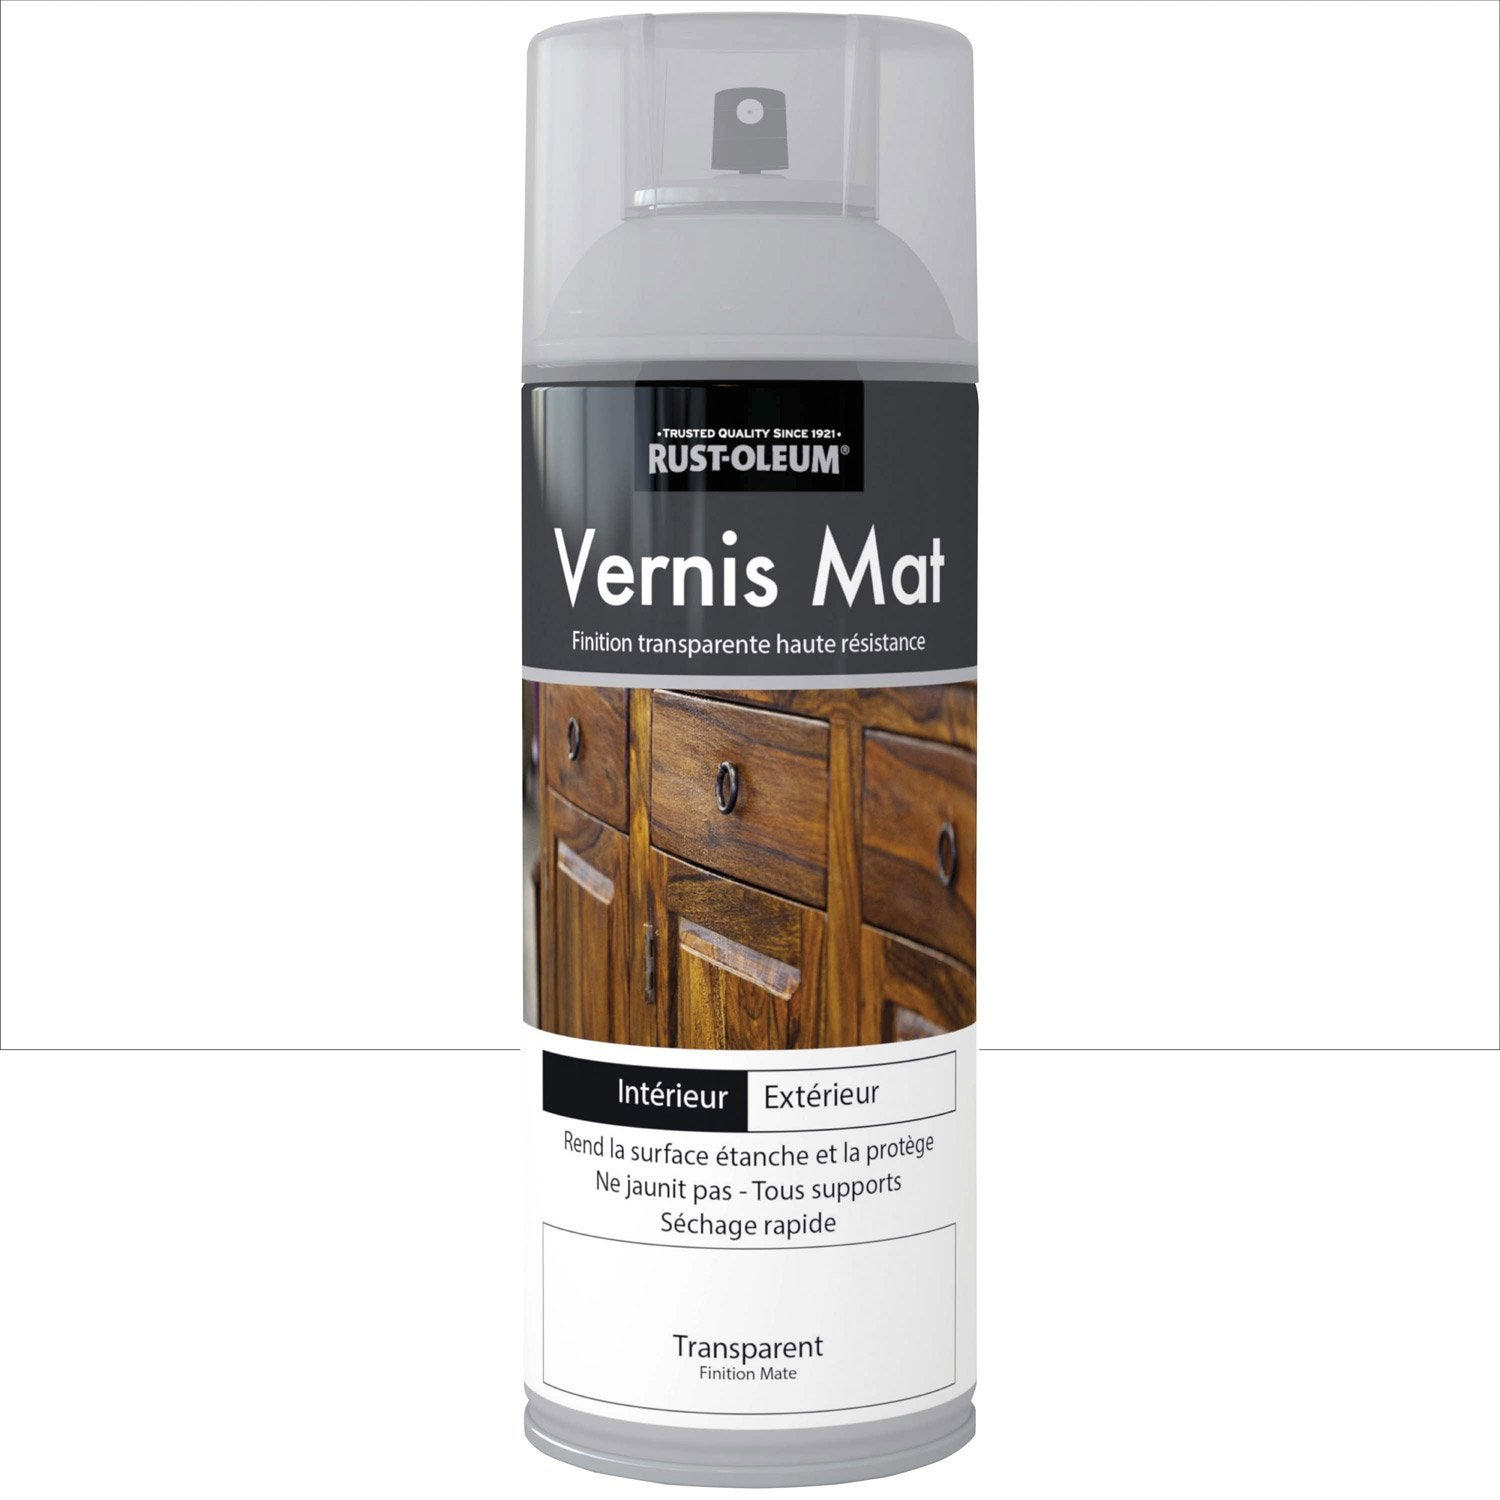 vernis en bombe a rosol mat rustoleum incolore 0 4 l leroy merlin. Black Bedroom Furniture Sets. Home Design Ideas